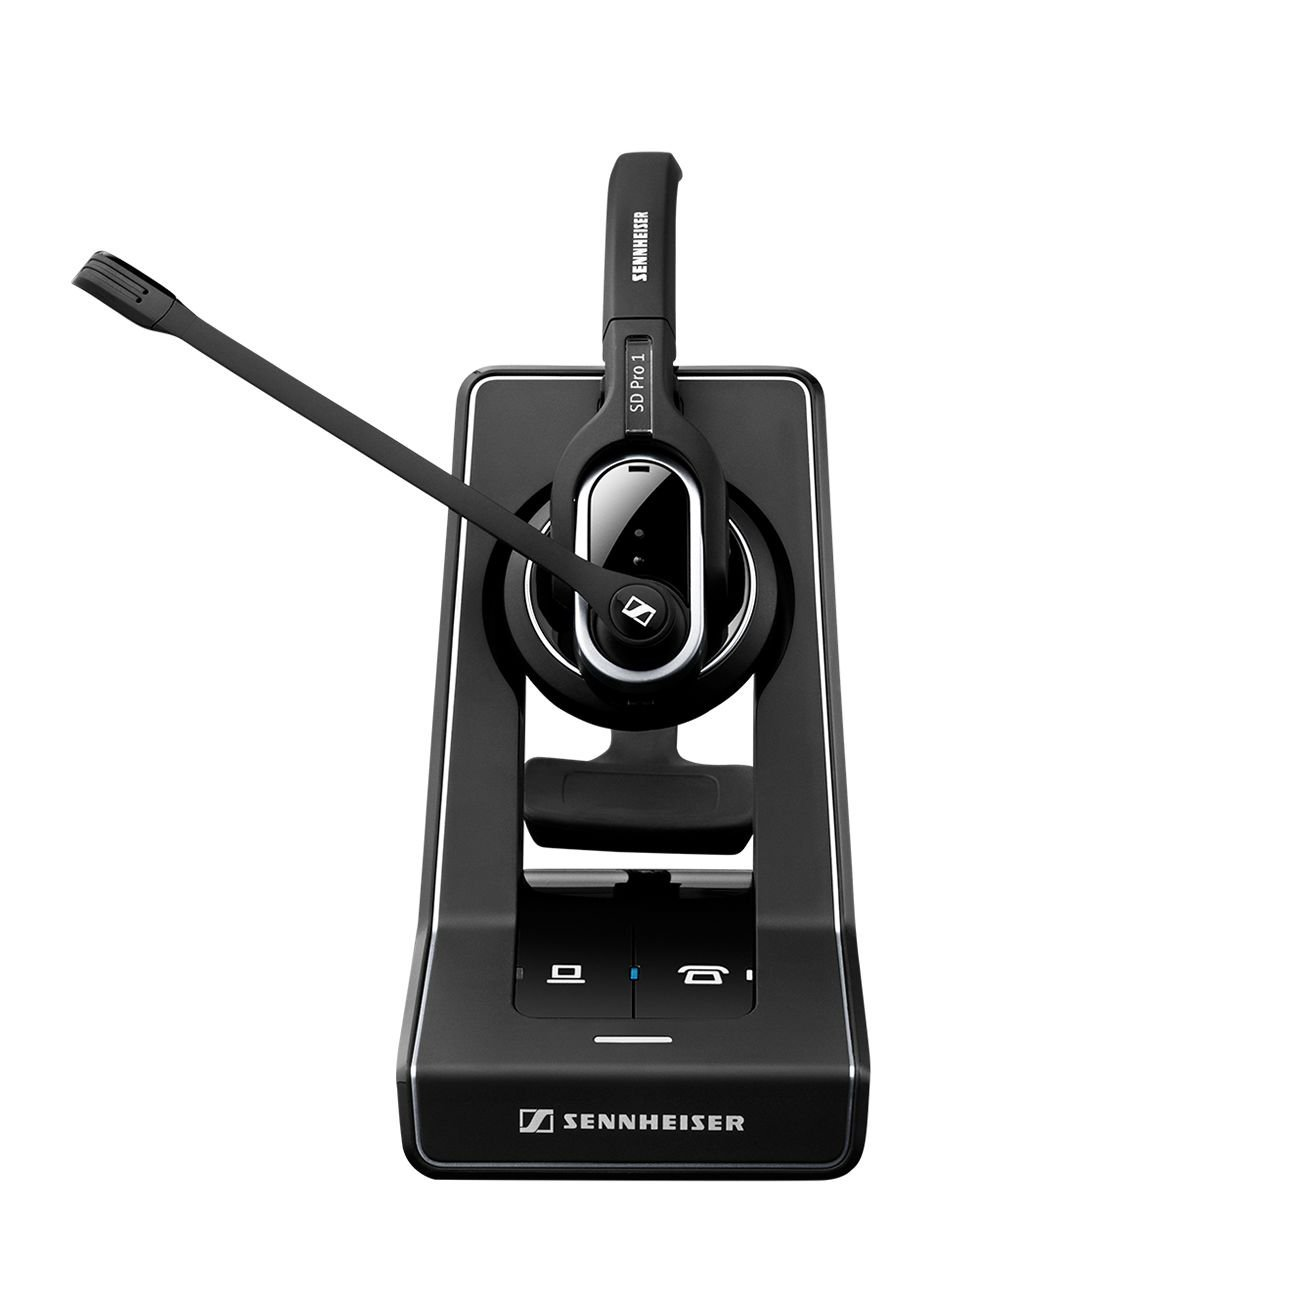 Sennheiser SD Pro 1 Wireless Headset System for Telephone and Computer (Certified Refurbished)